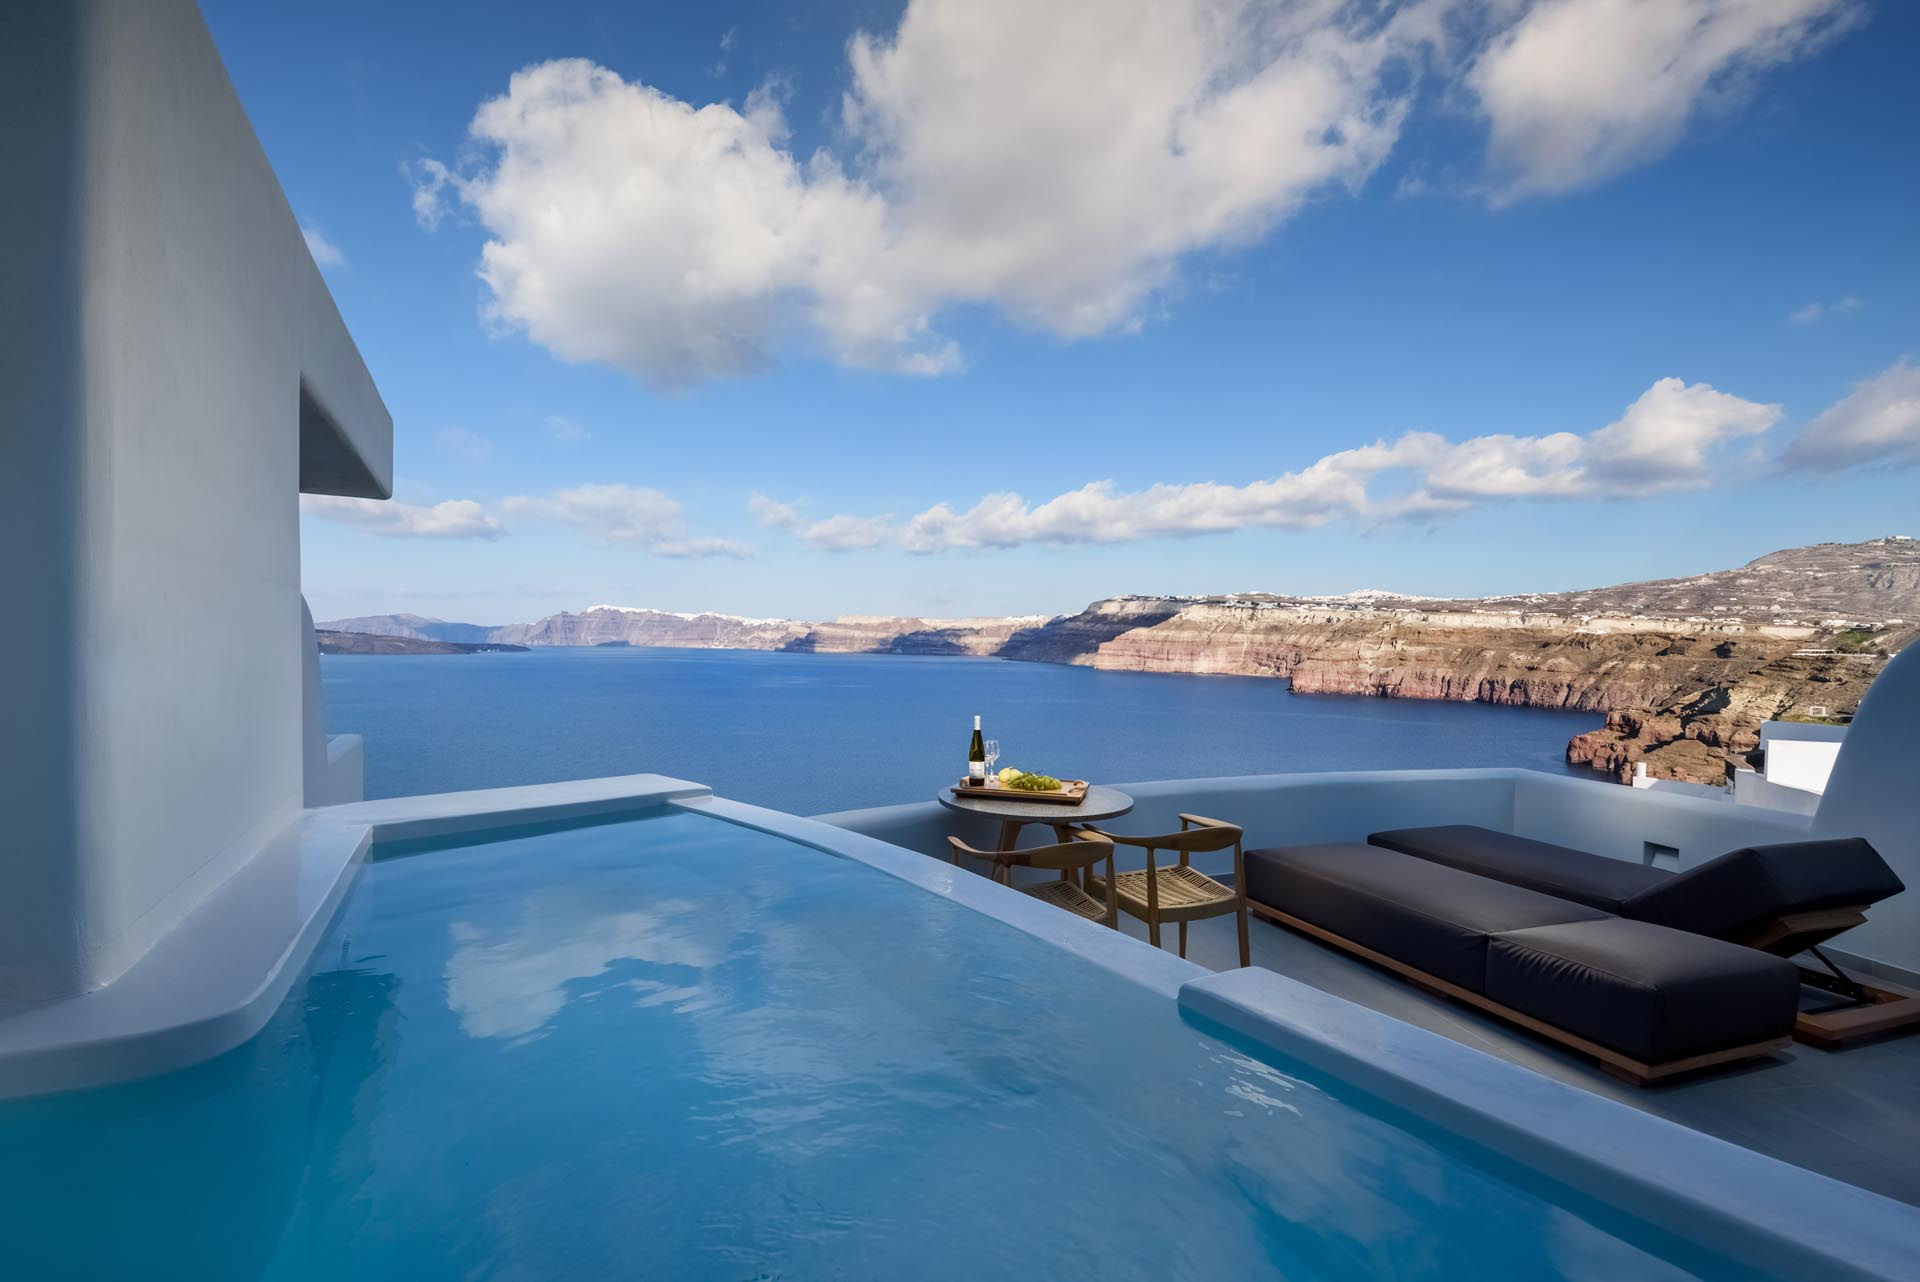 Neptune Luxury Suites in Akrotiri of Santorini island